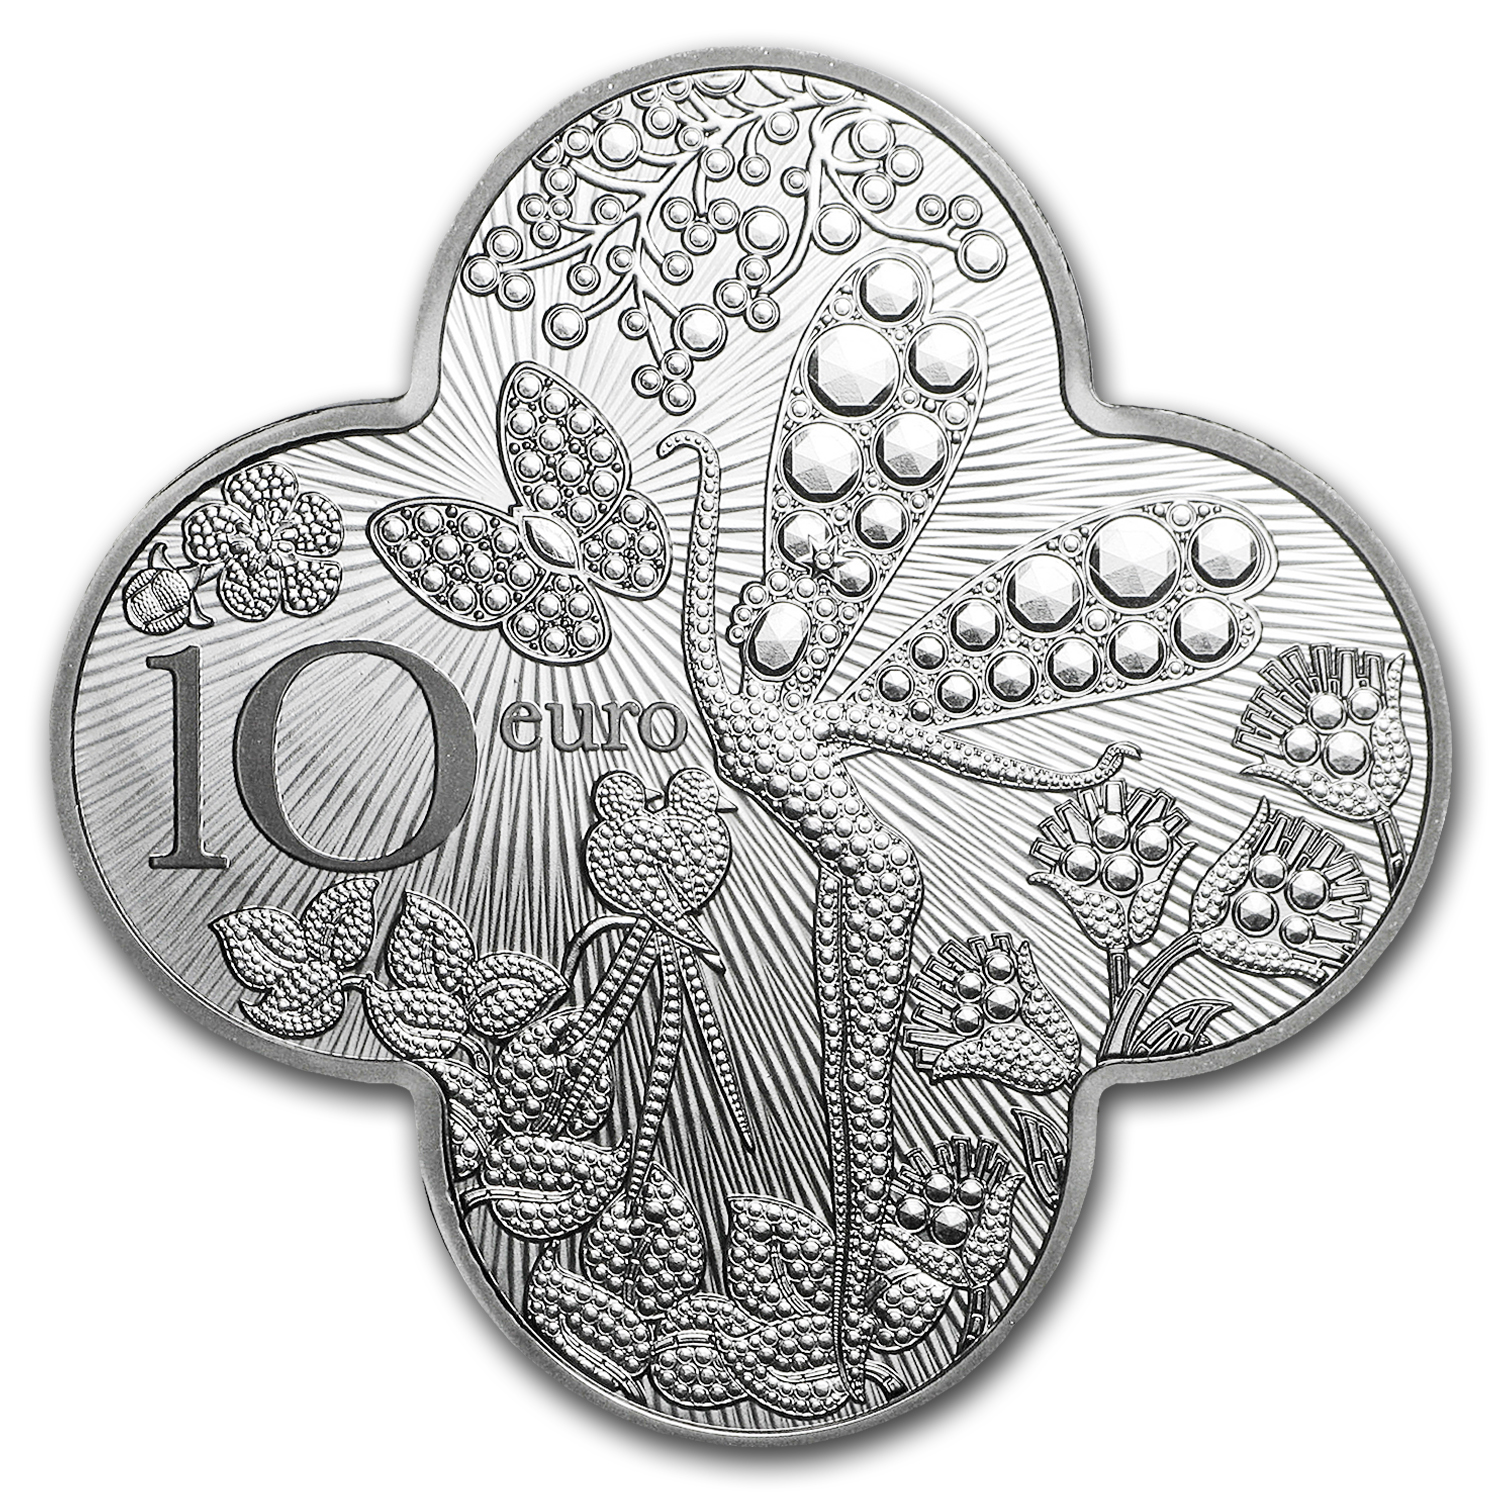 2016 France €10 Silver Excellence Series Prf (Van Cleef & Arpels)